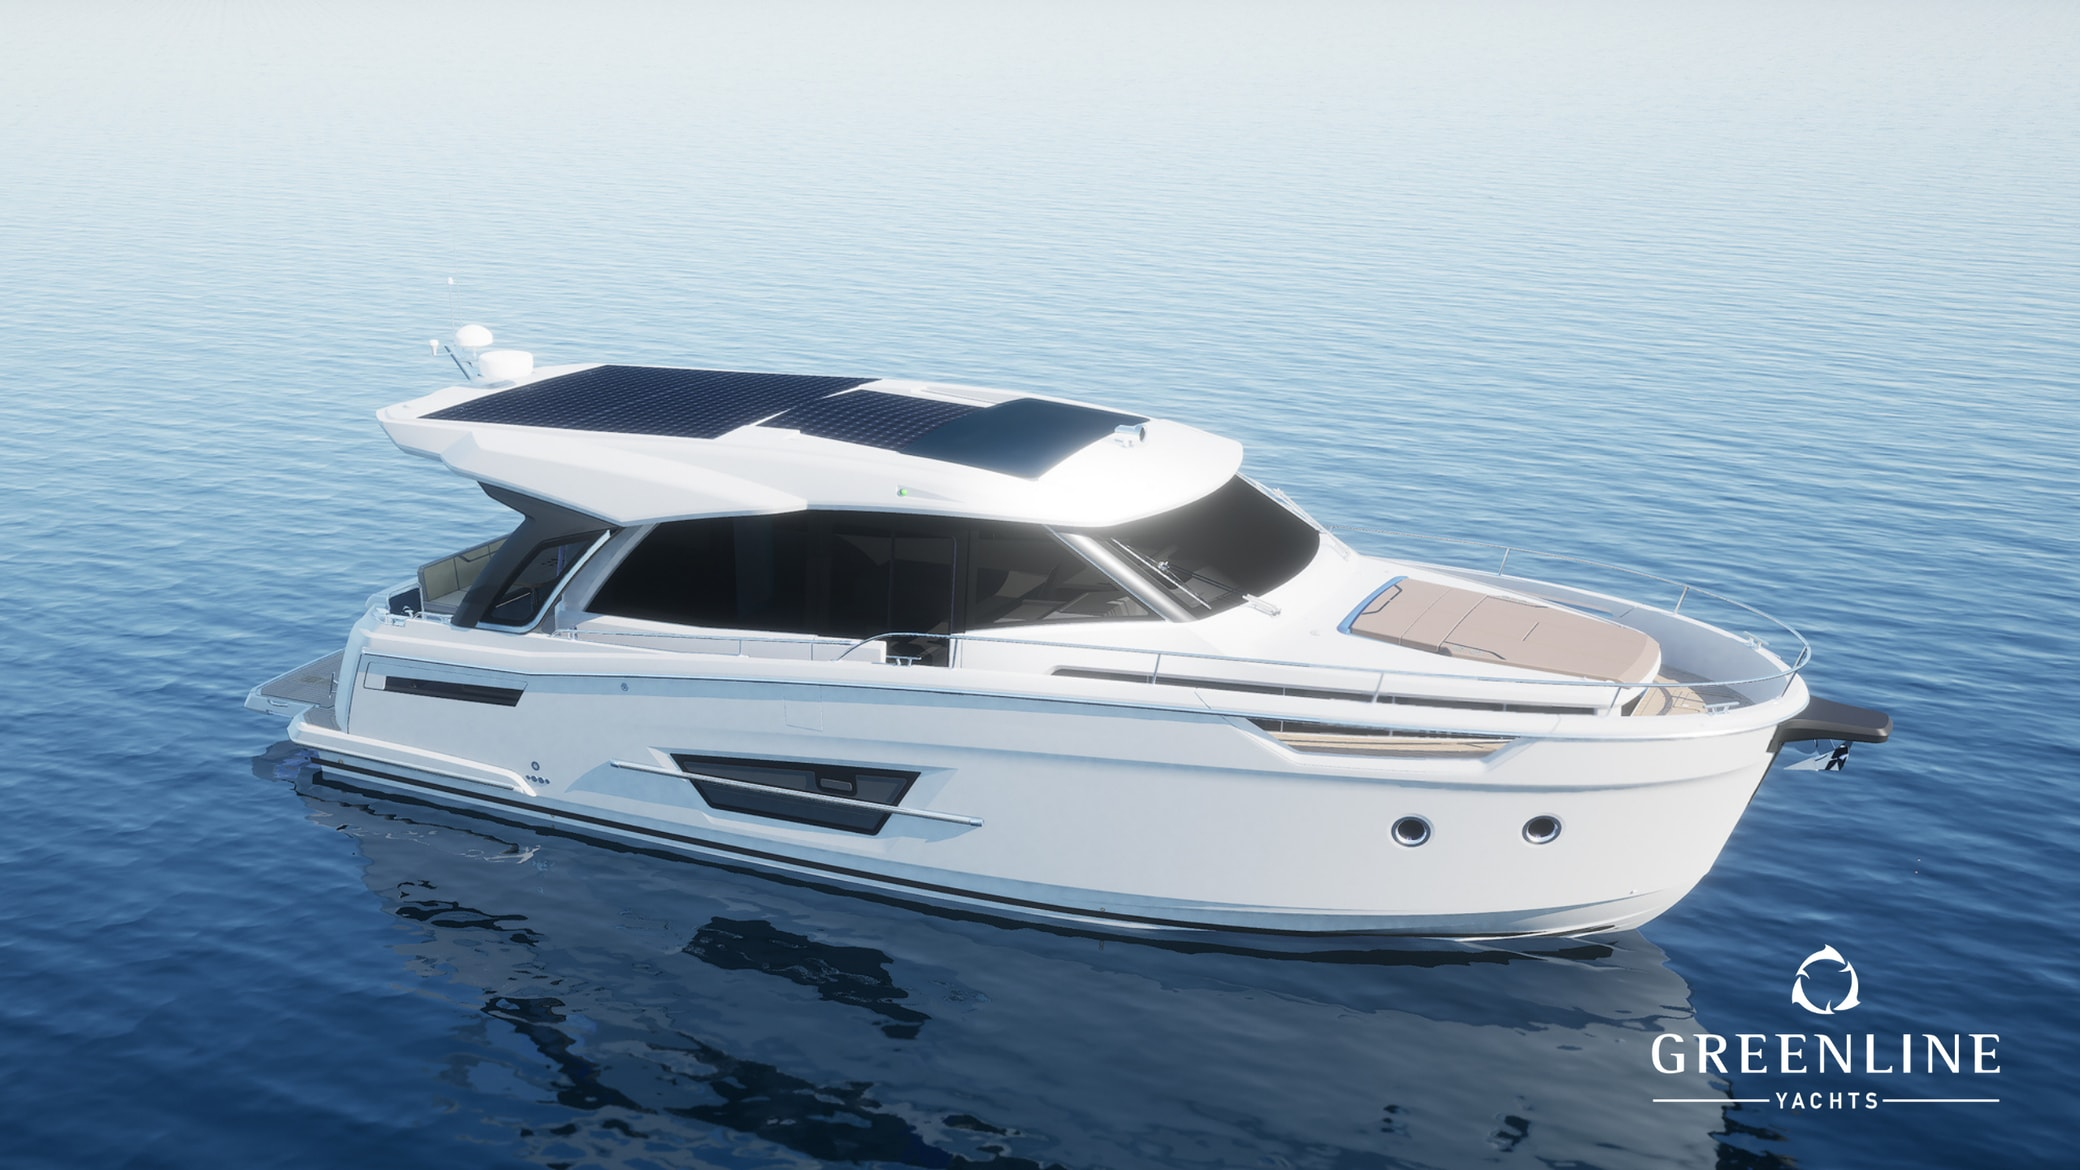 Greenline 45 Coupe Yachts Australia